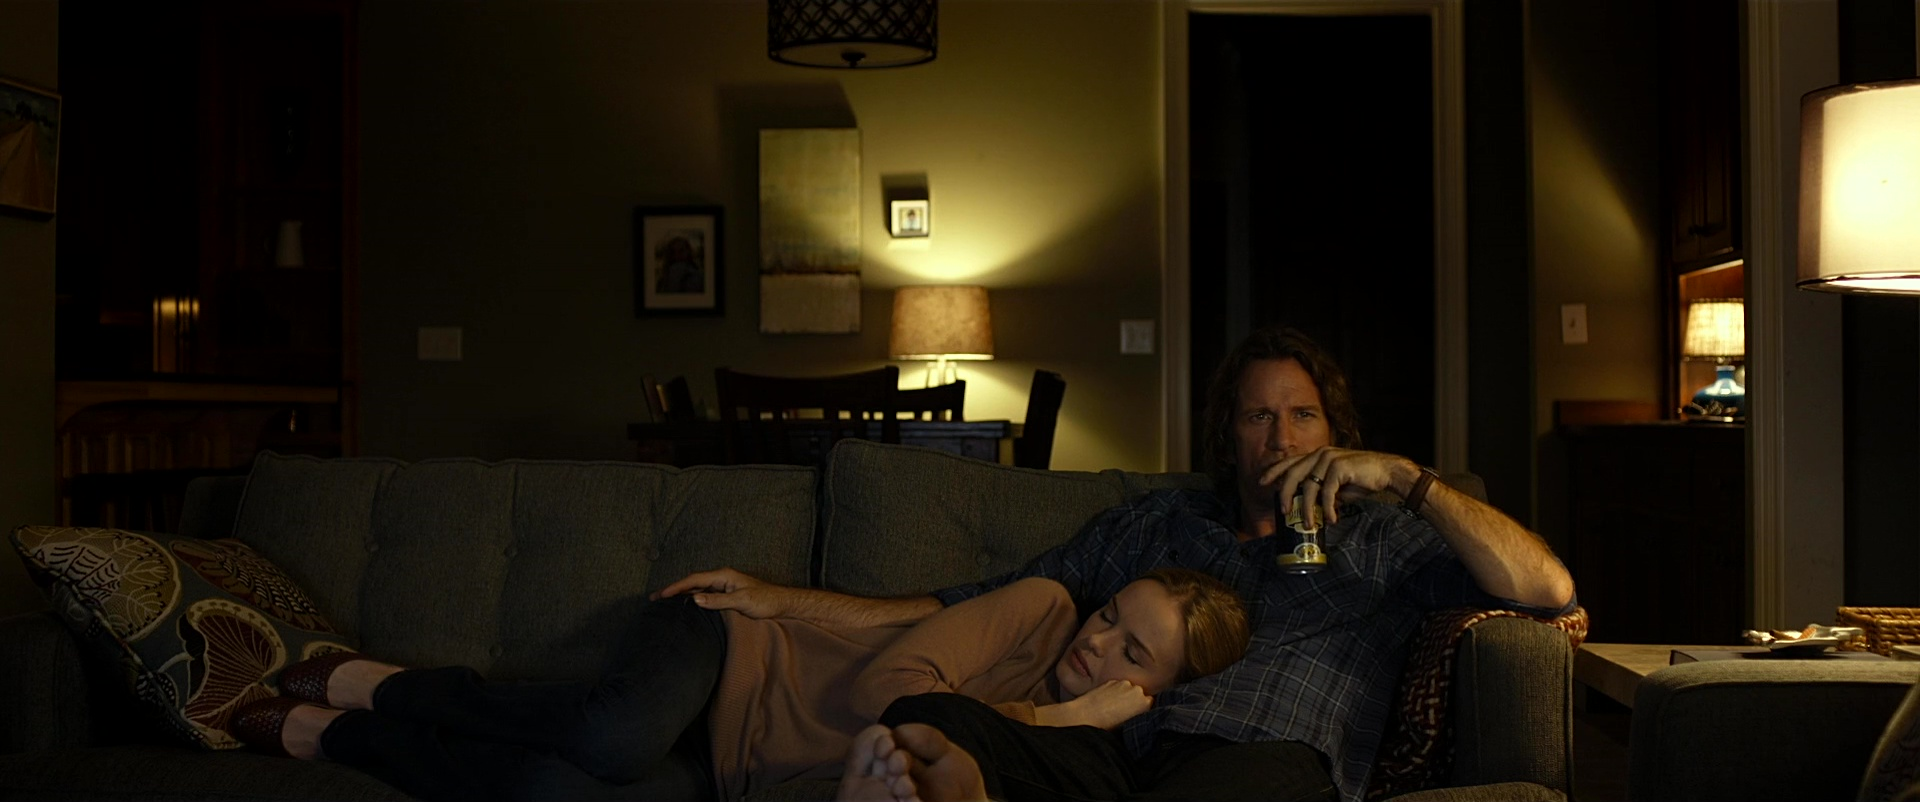 Before I Wake film still 1